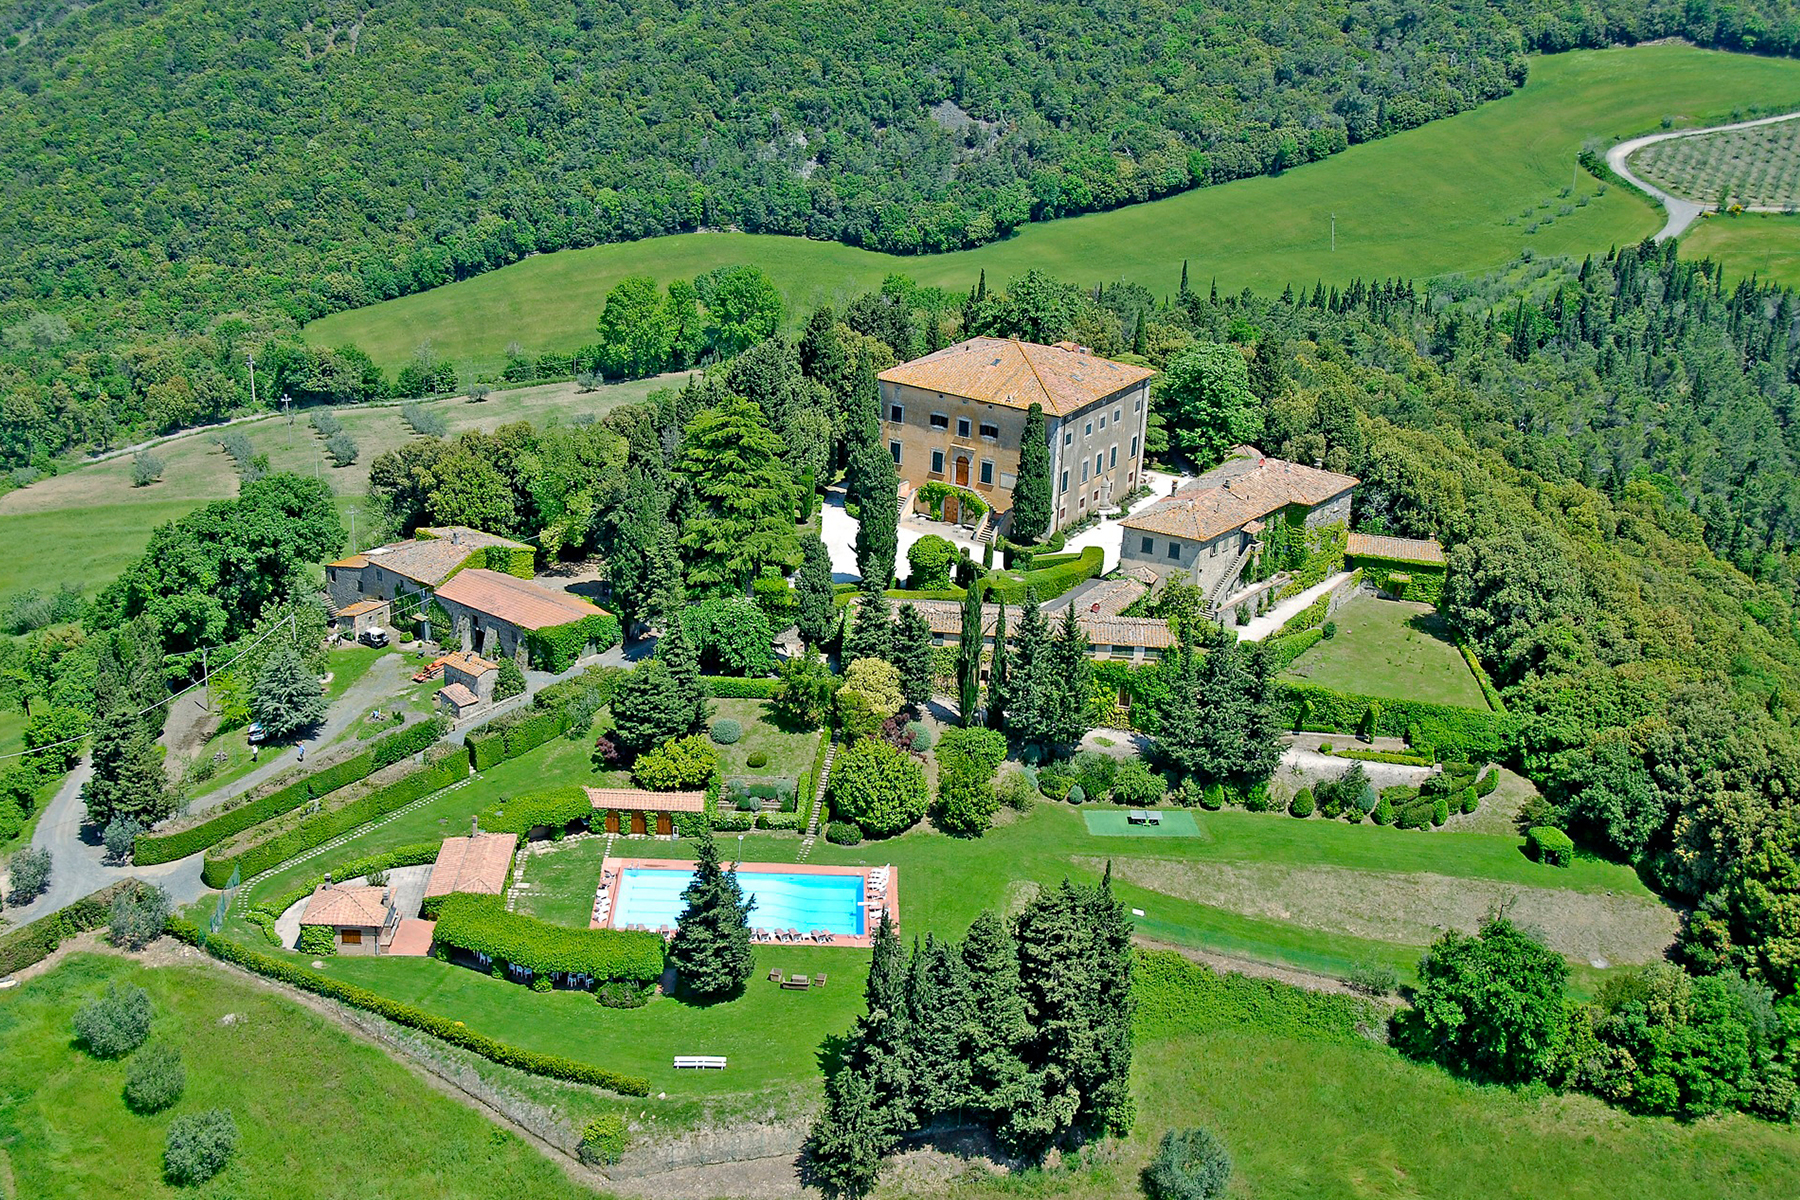 Single Family Home for Sale at Exquisite original and beautiful 17th century Villa Volterra, Pisa Italy